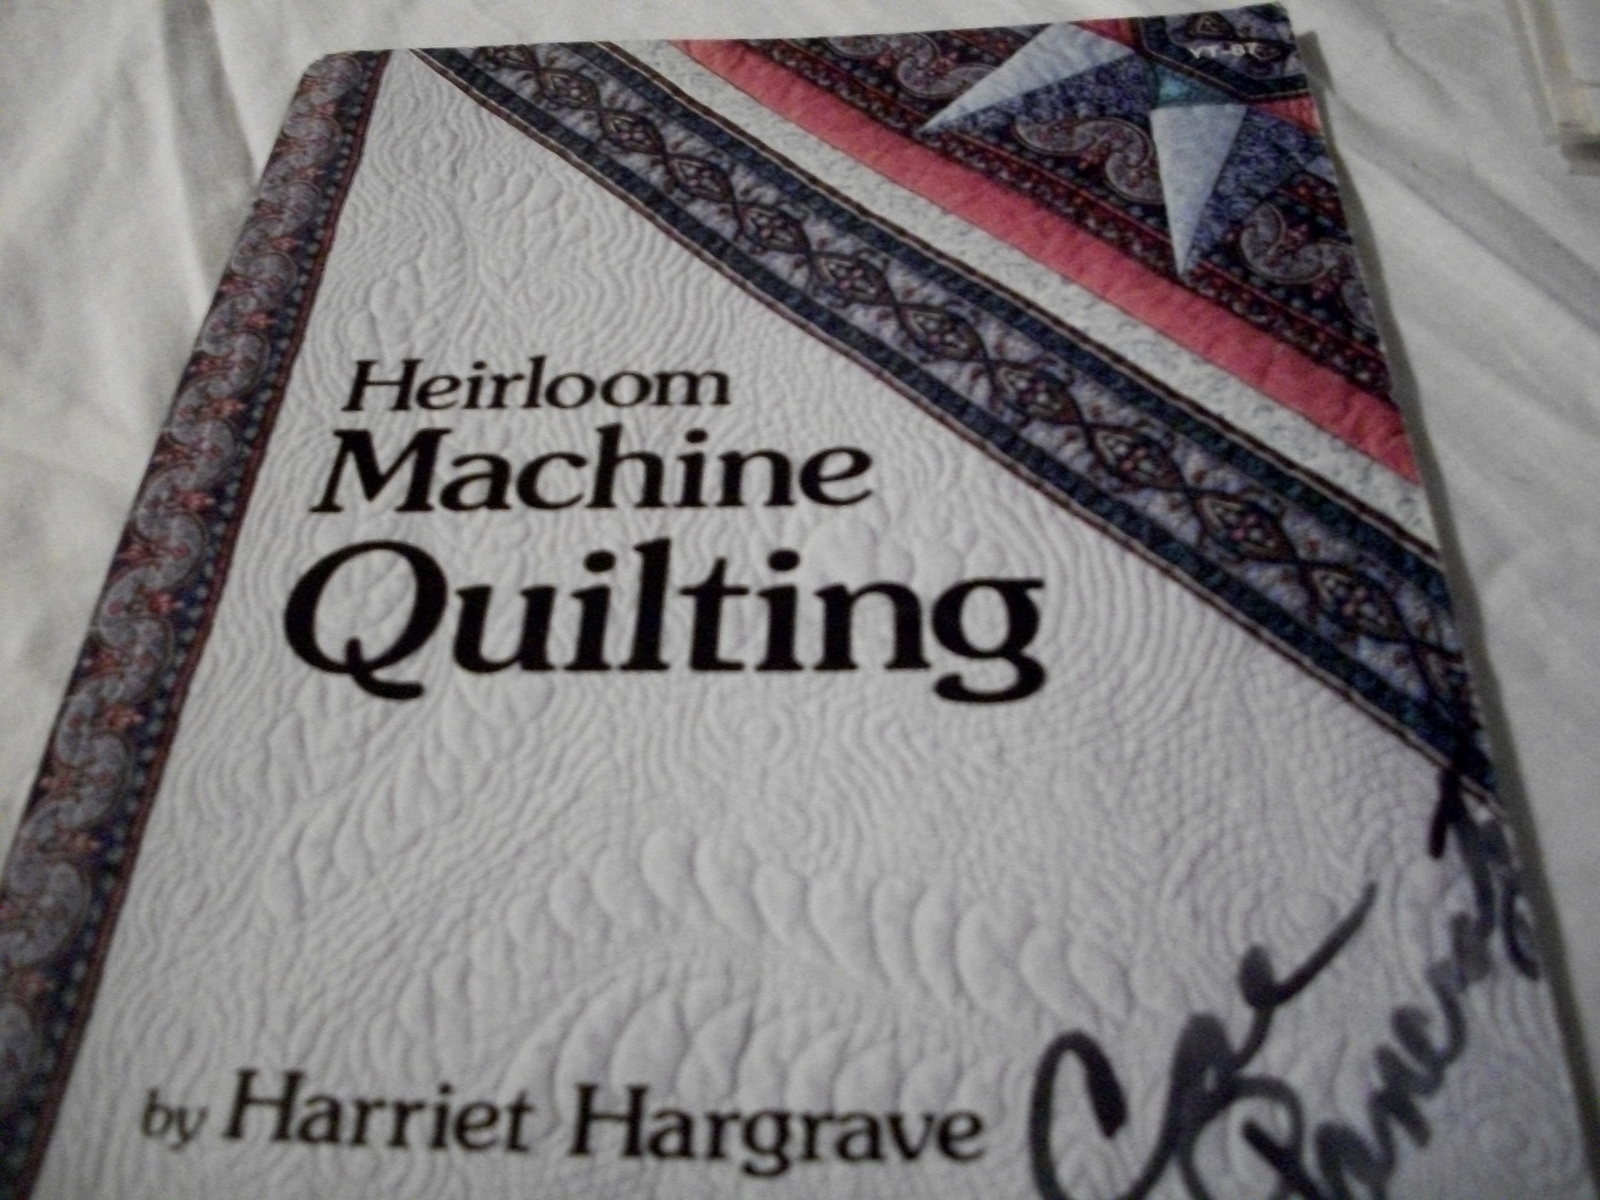 Heirloom Machine Quilting - $5.00